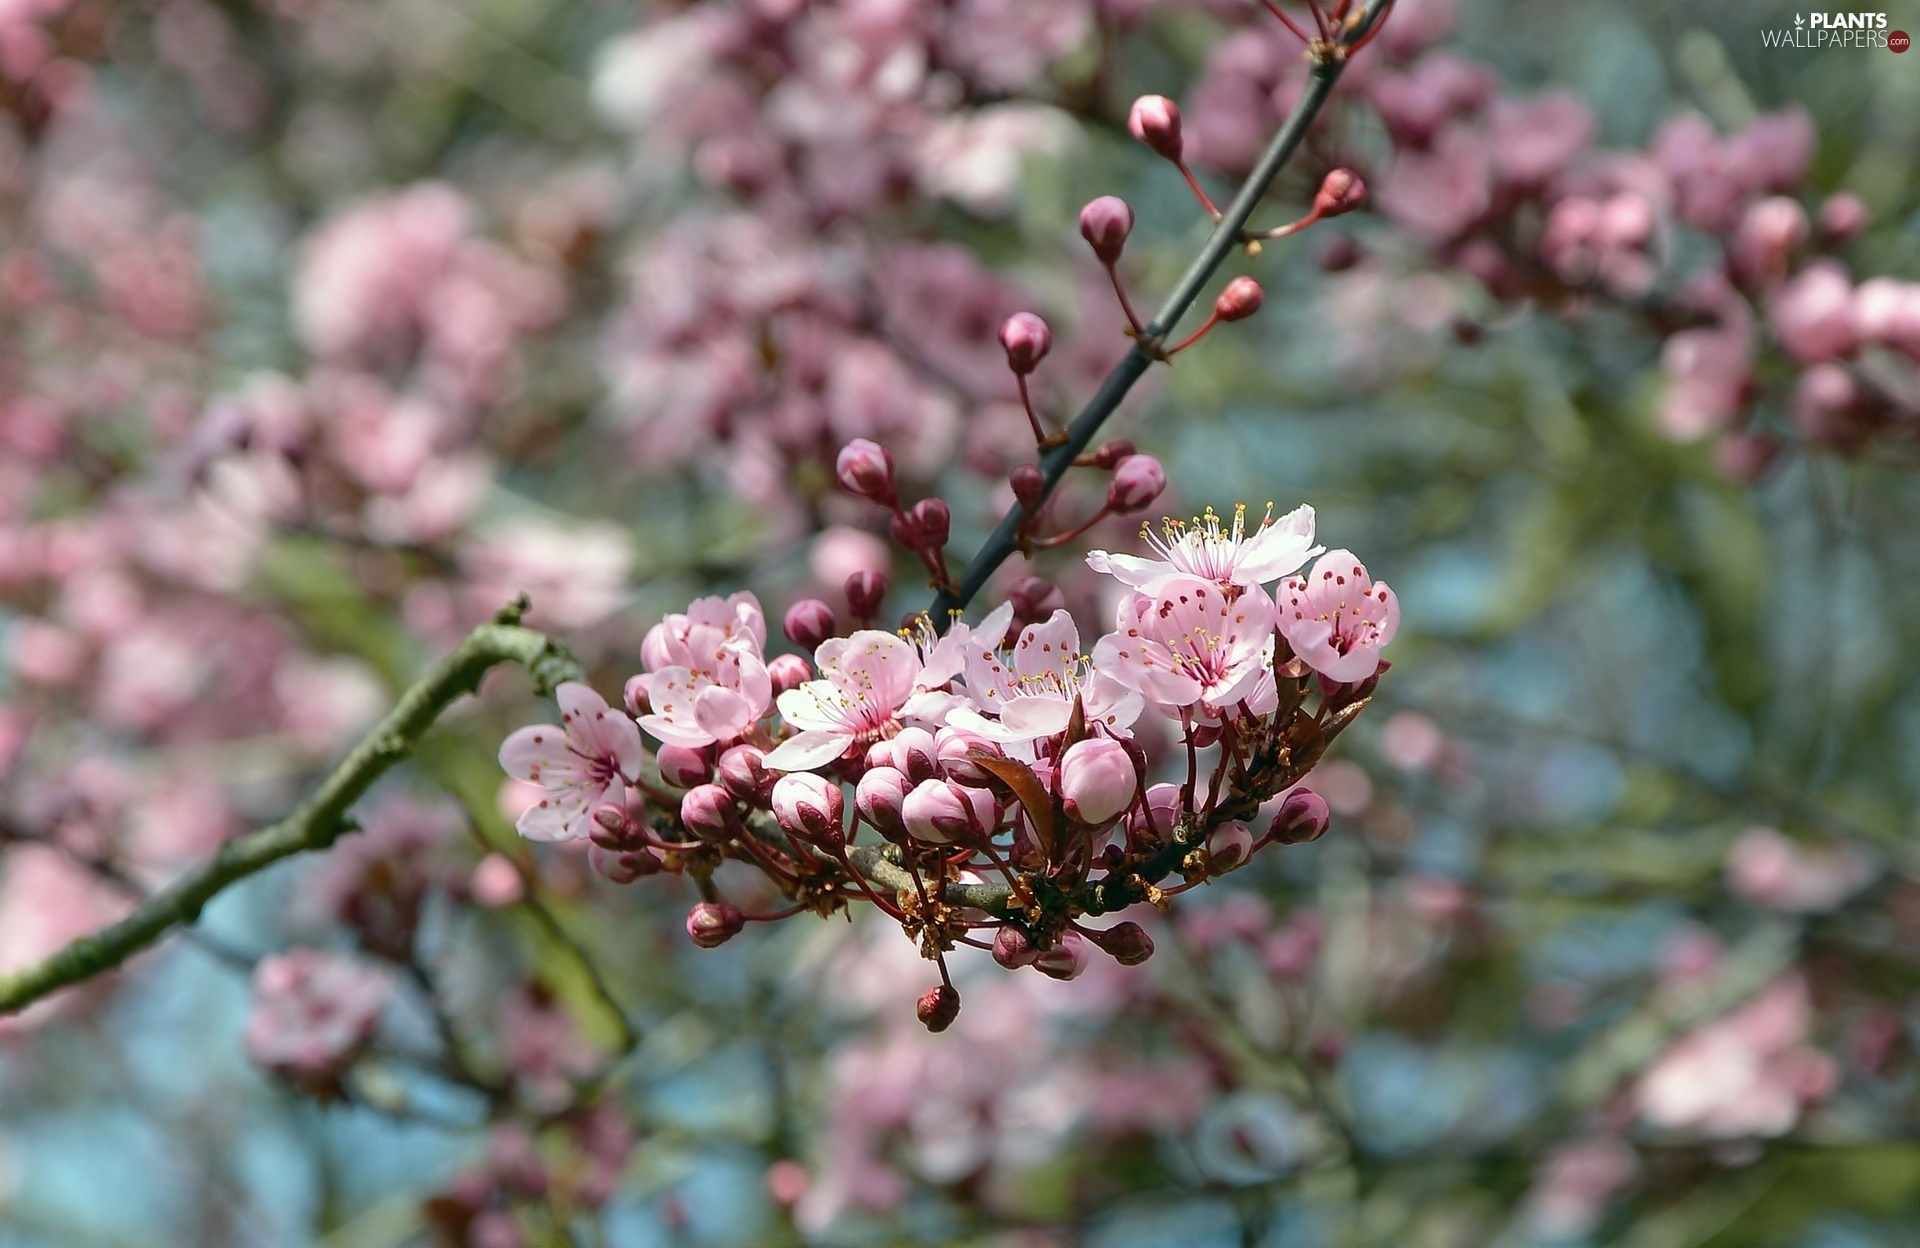 blurry background, Flowers, twig, Fruit Tree